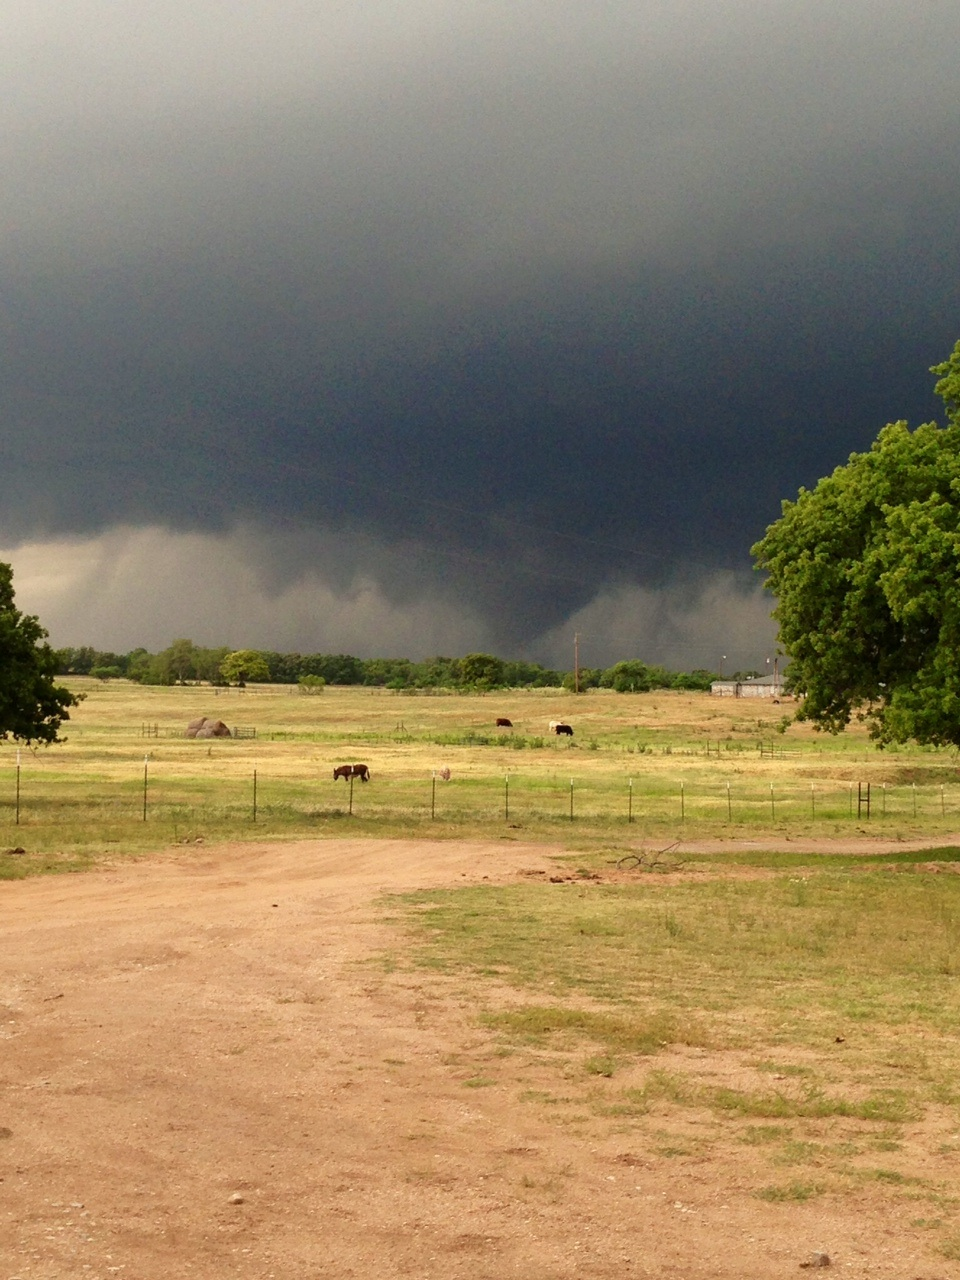 A tornado was spotted around 6:25 p.m. on Farm Road 2265 about a mile from Texas 101. Photo submitted by Delia Hernandez.